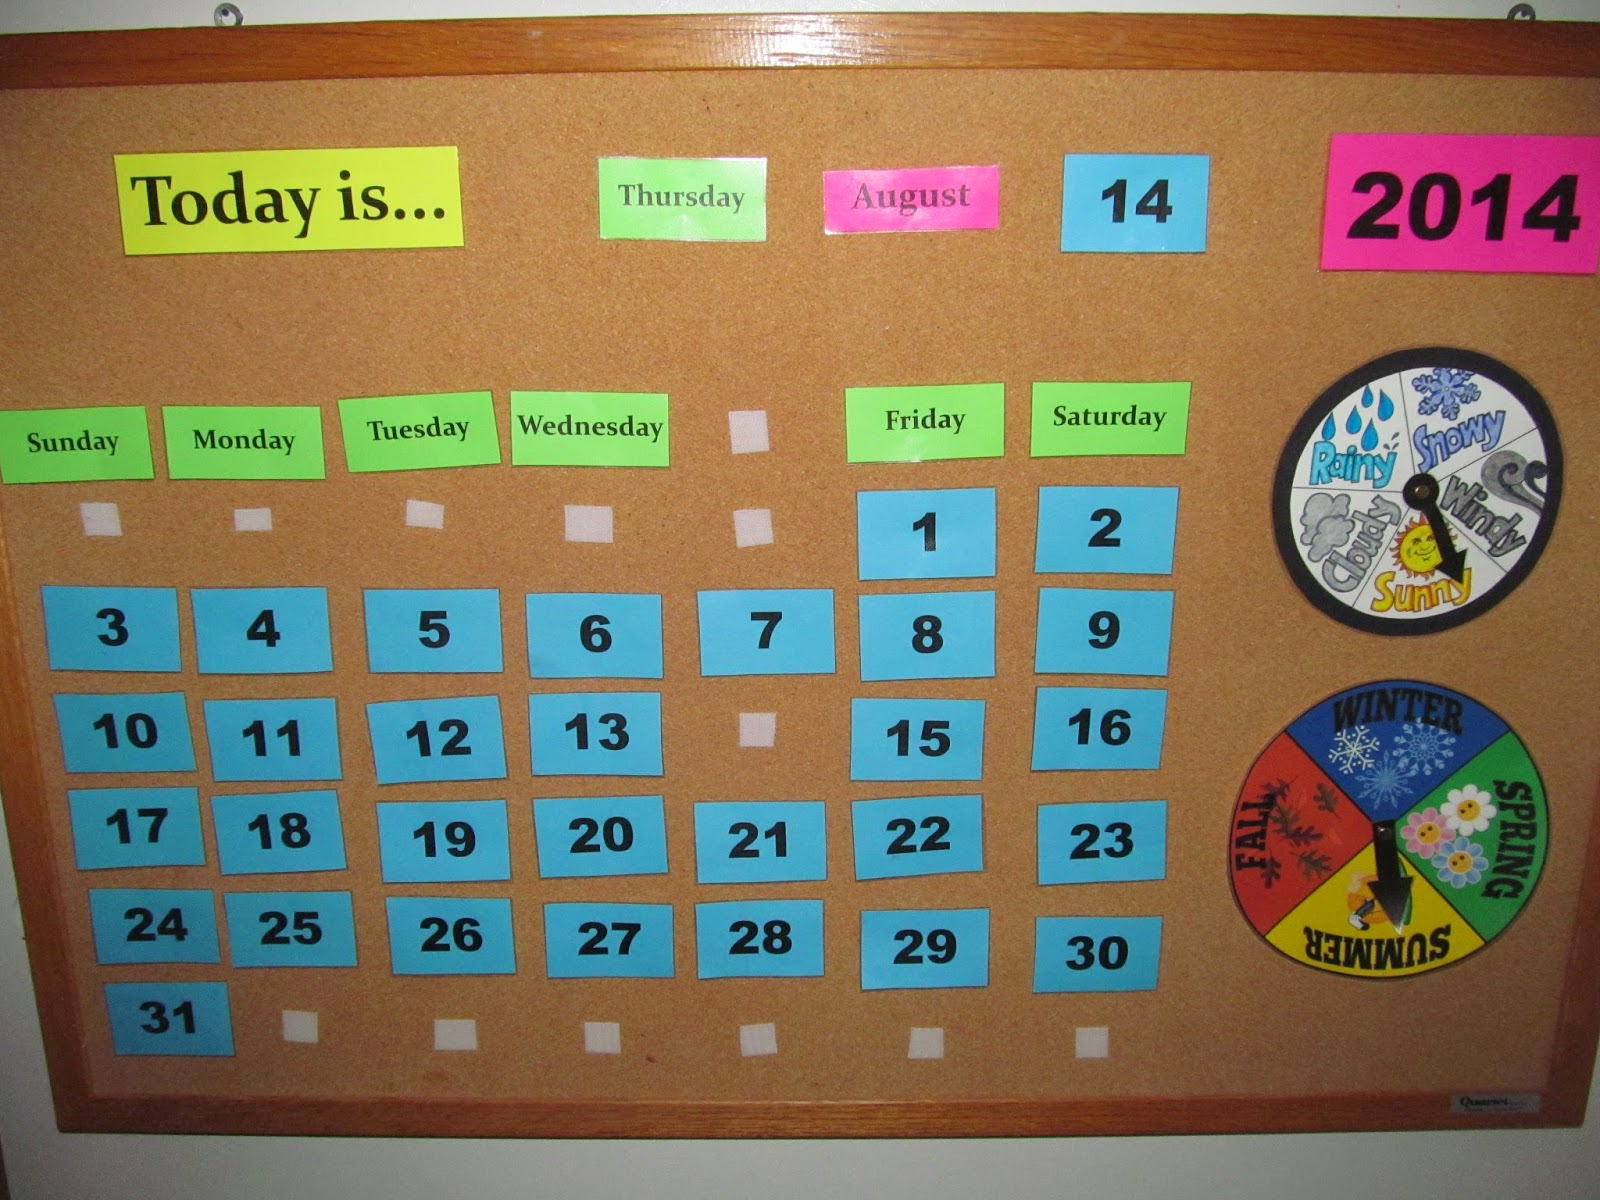 Forum on this topic: How to Make a Calendar Board and , how-to-make-a-calendar-board-and/